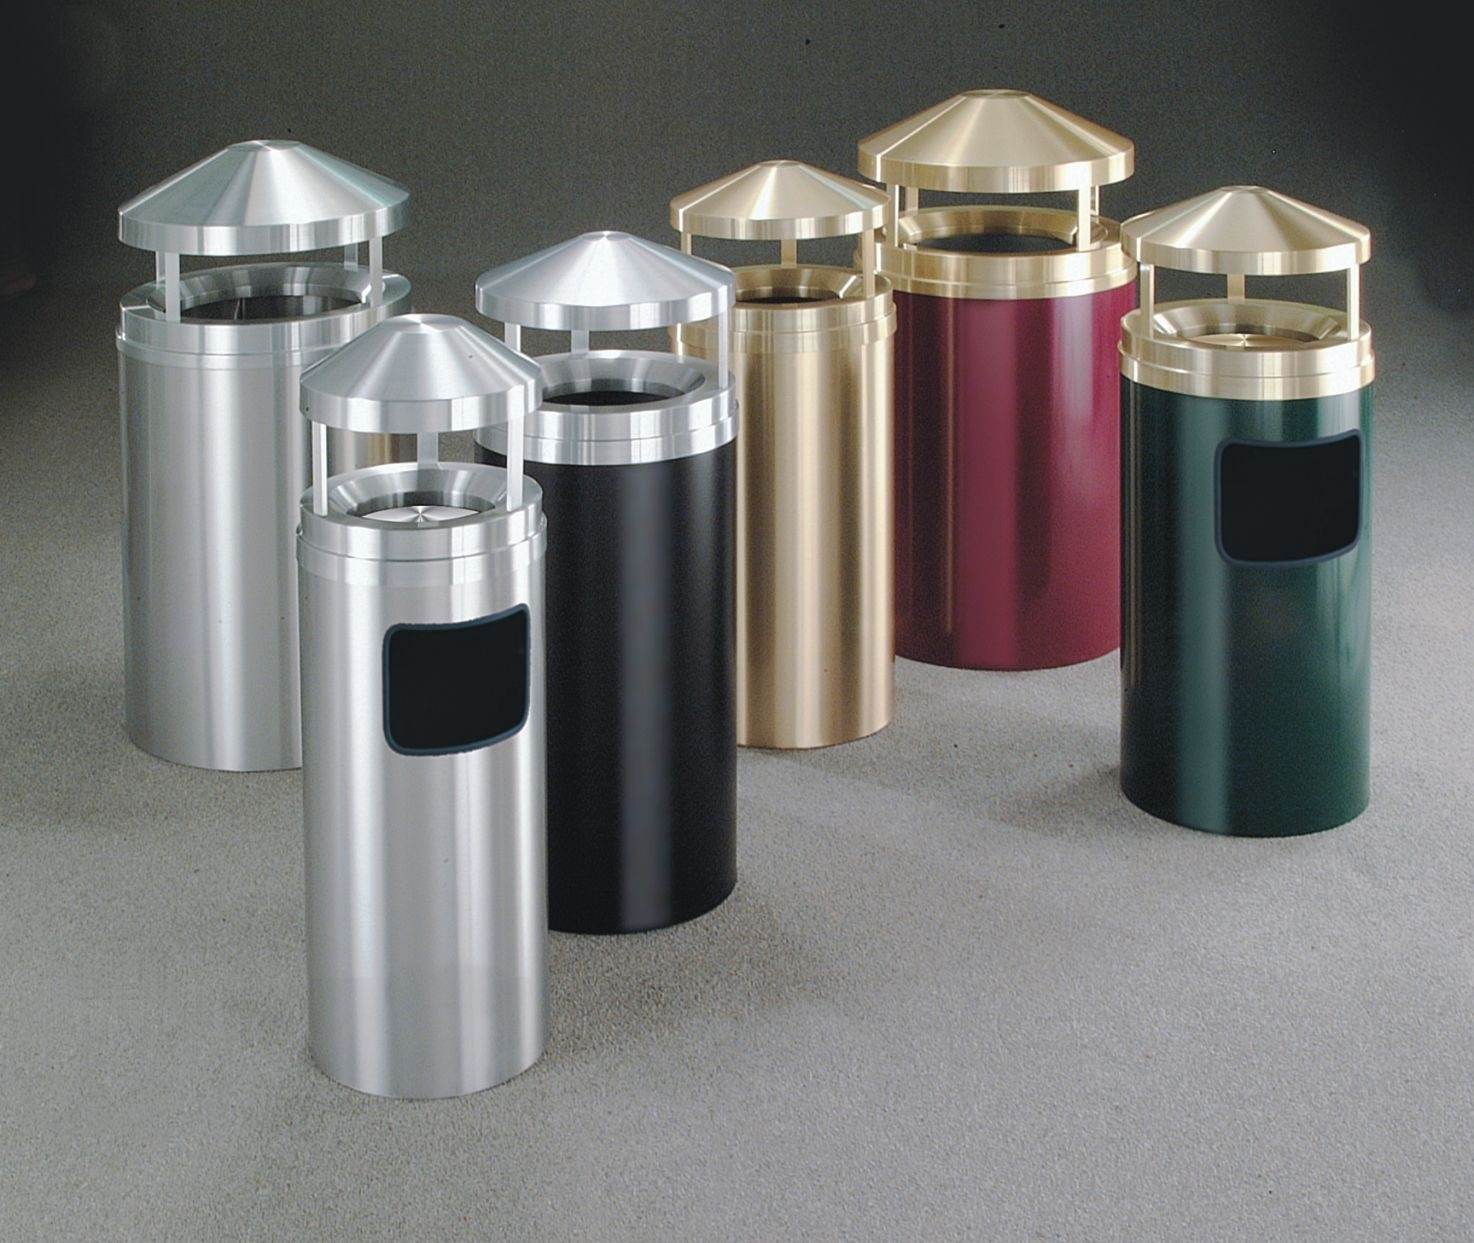 glaro-canopy-top-receptacles.jpg